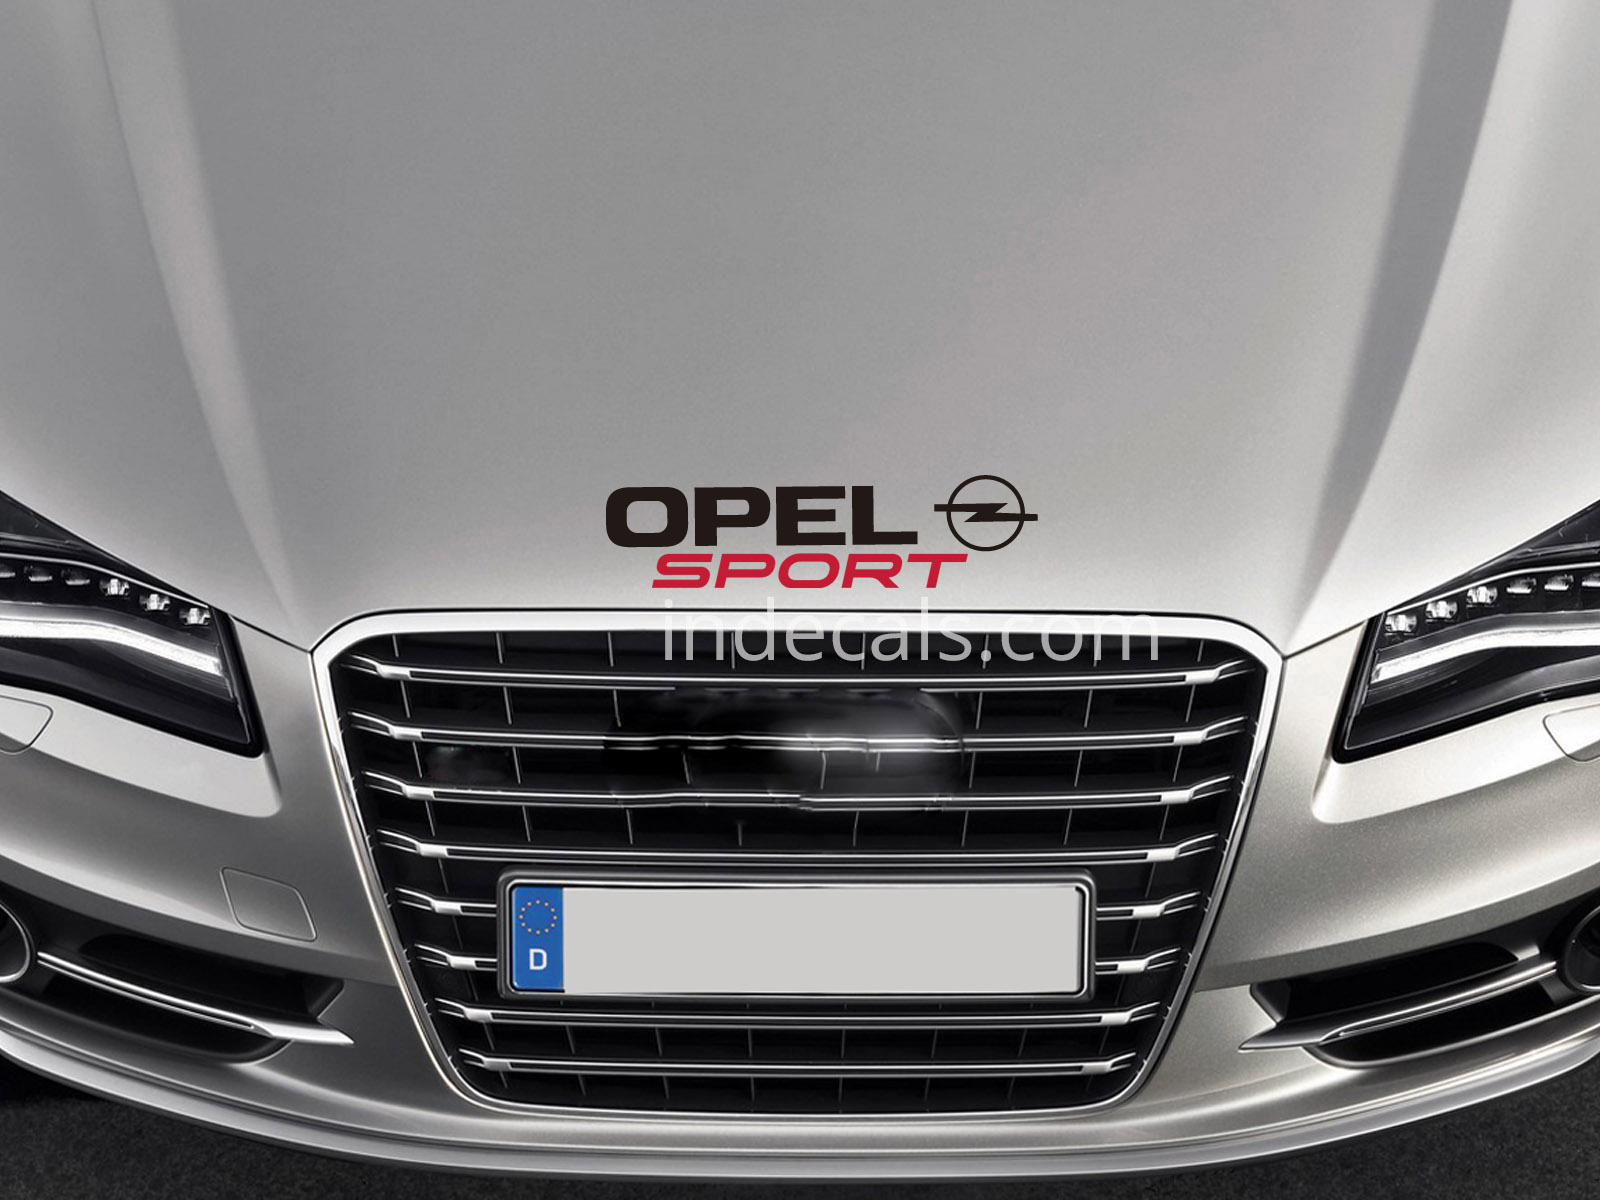 1 x Opel Sport Sticker for Bonnet - Black & Red